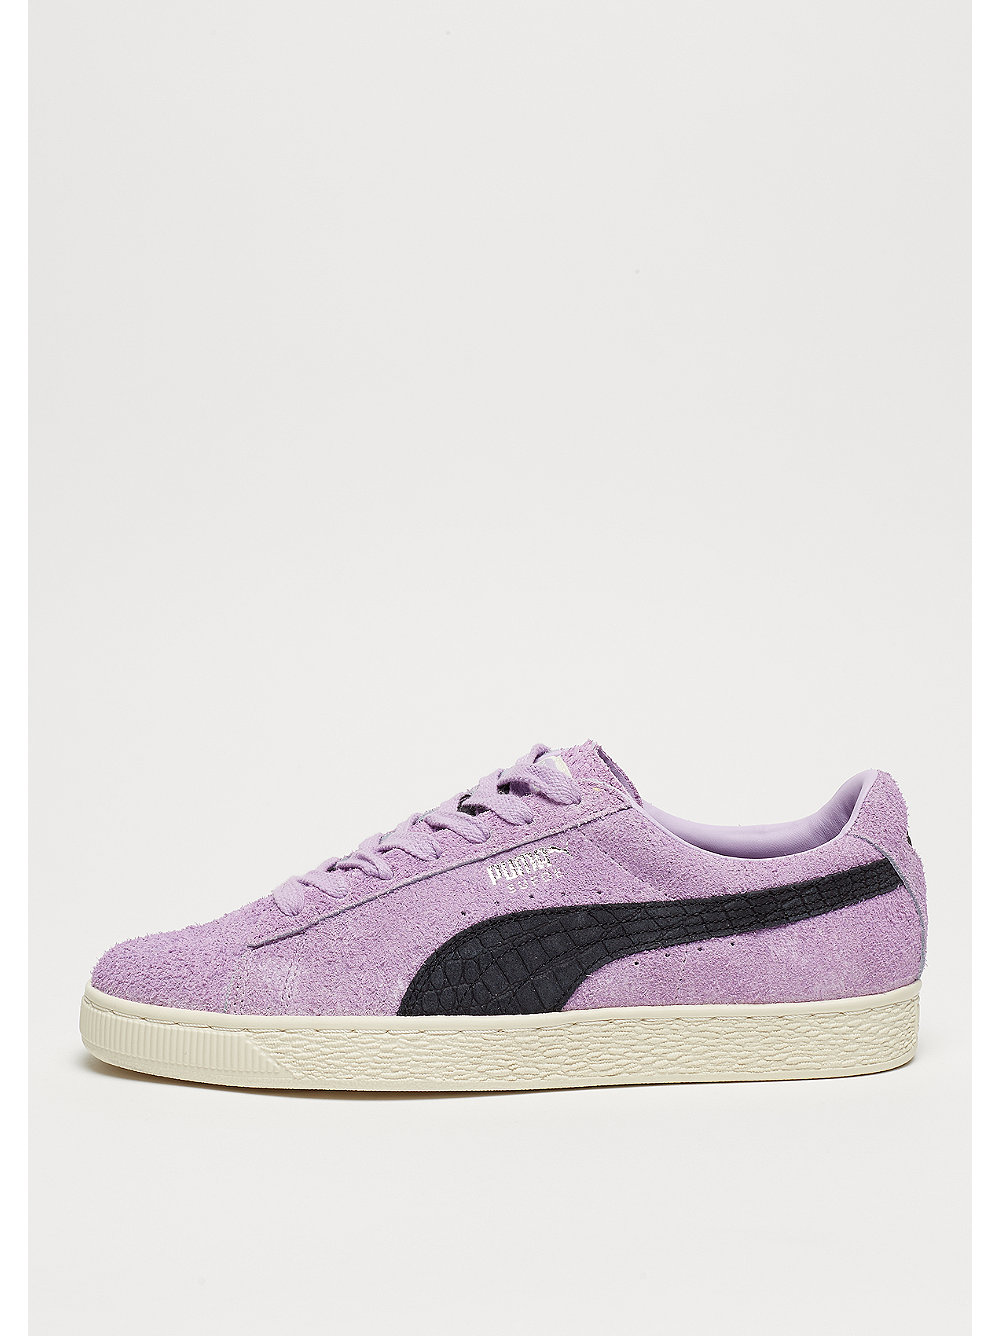 Puma Herren Suede x Diamond orchid bloom/puma black lila Neu